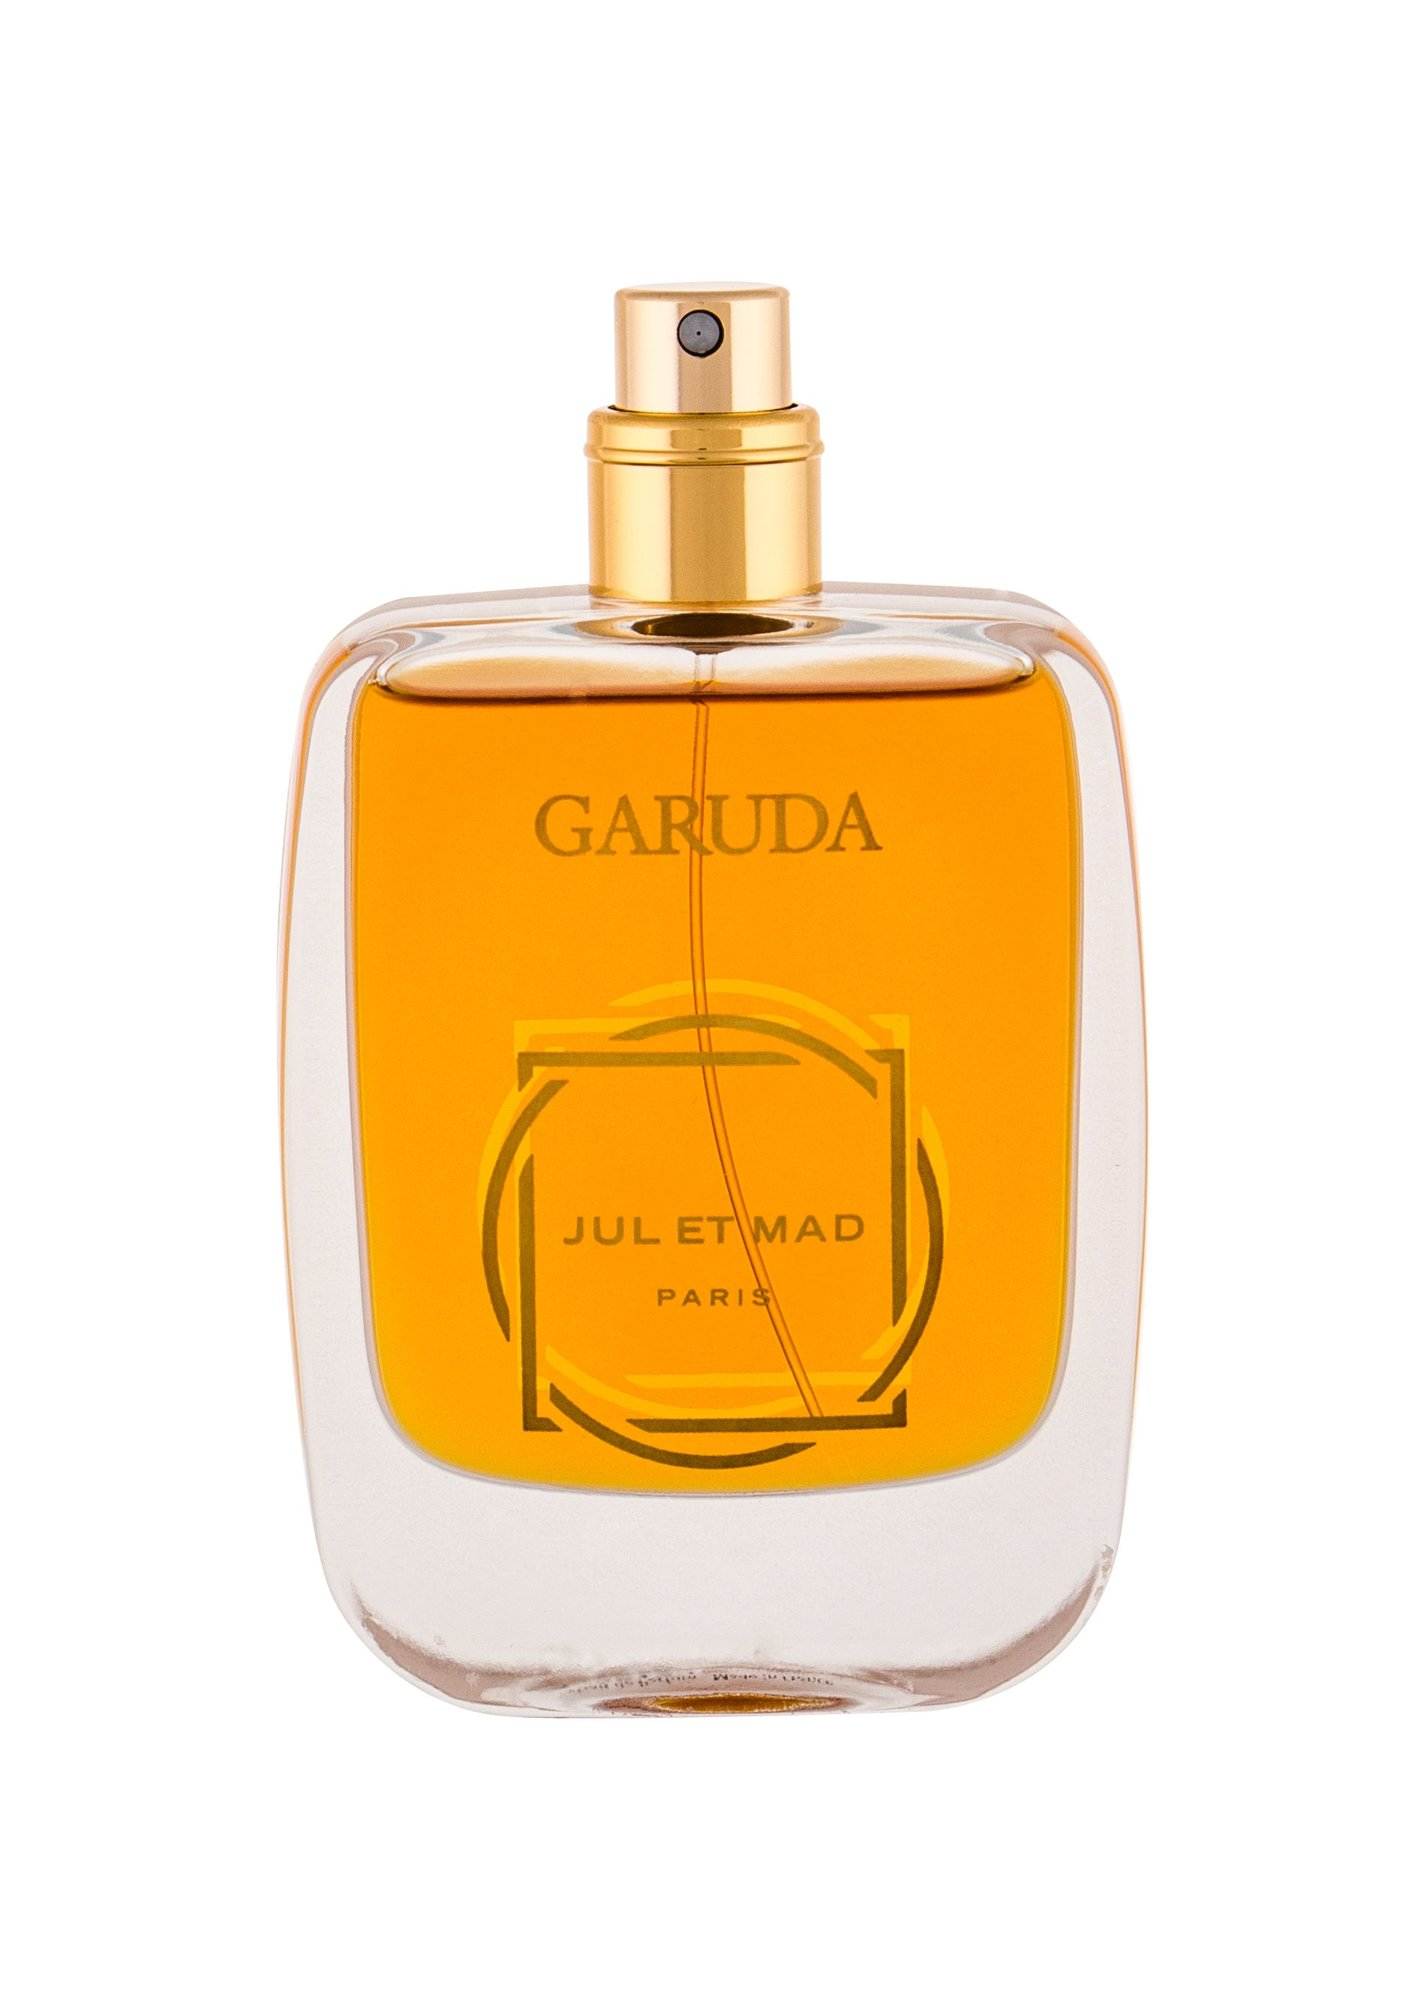 Jul et Mad Paris Garuda Perfume 50ml